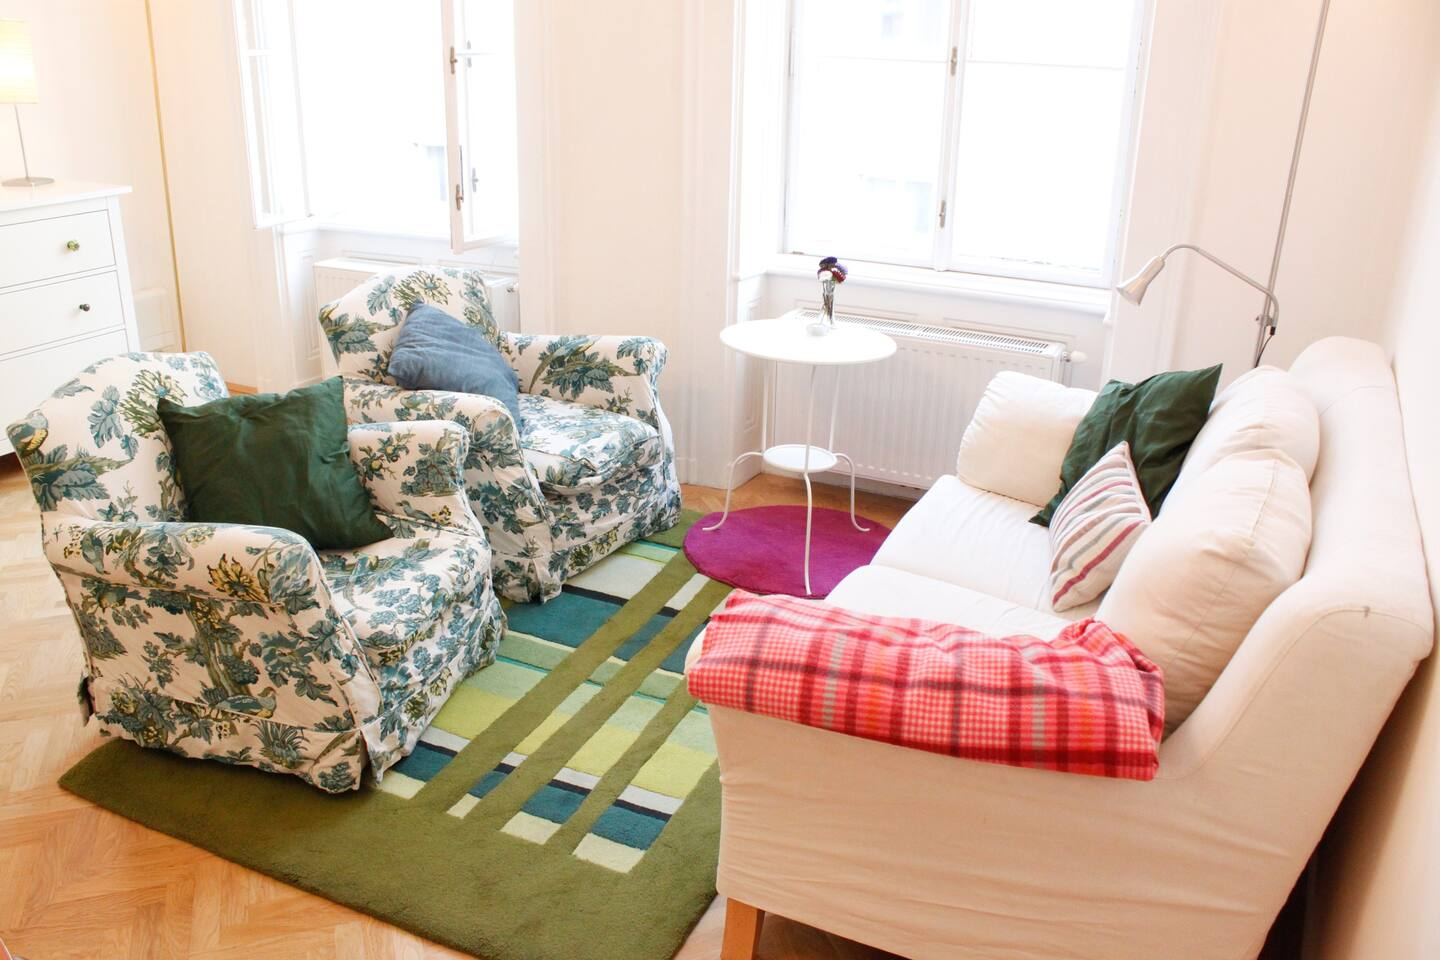 Love our couch corner and chill after a day of sightseeing.